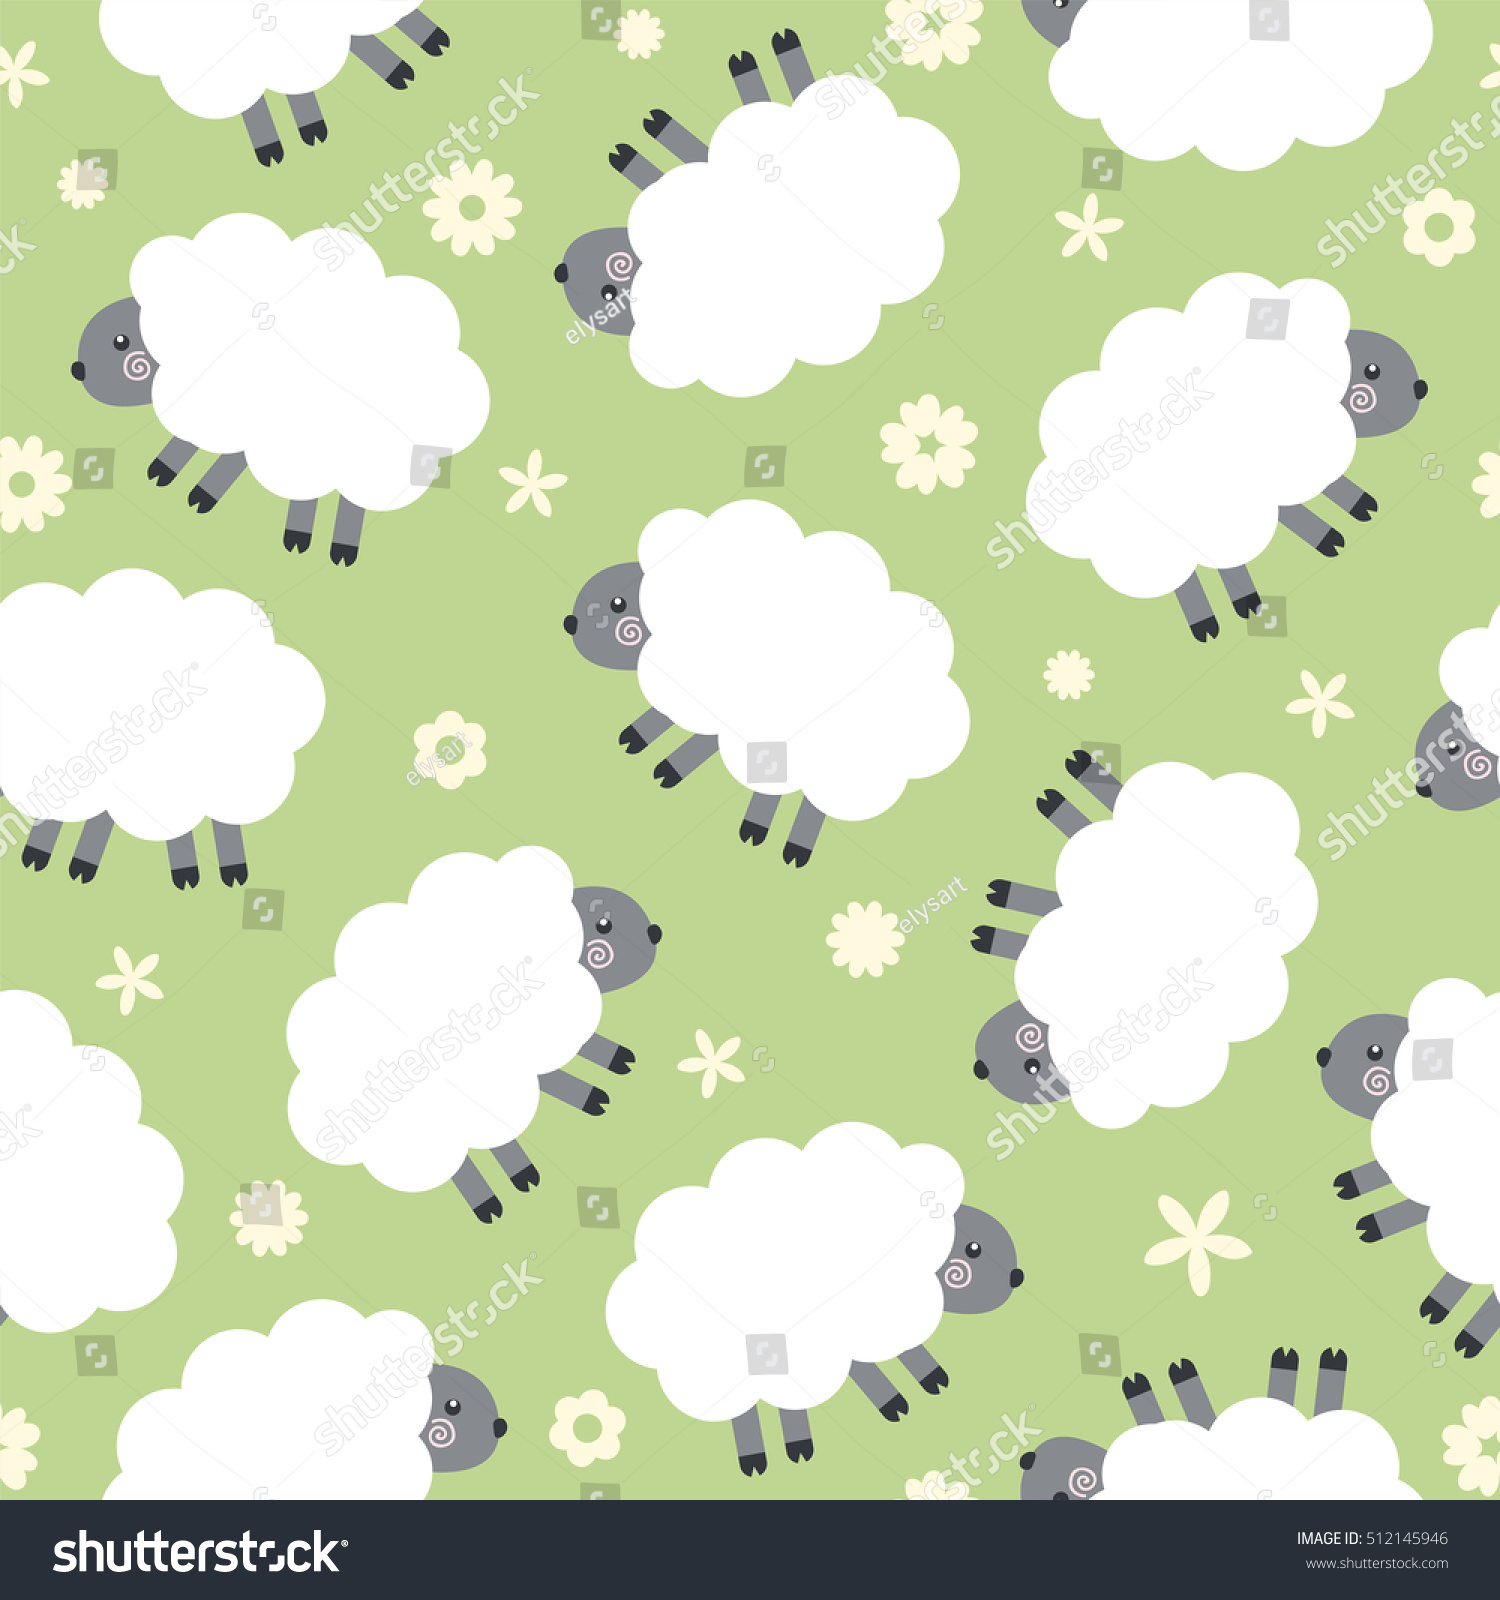 Wallpaper With Cute Sheep Seamless Vector Pattern